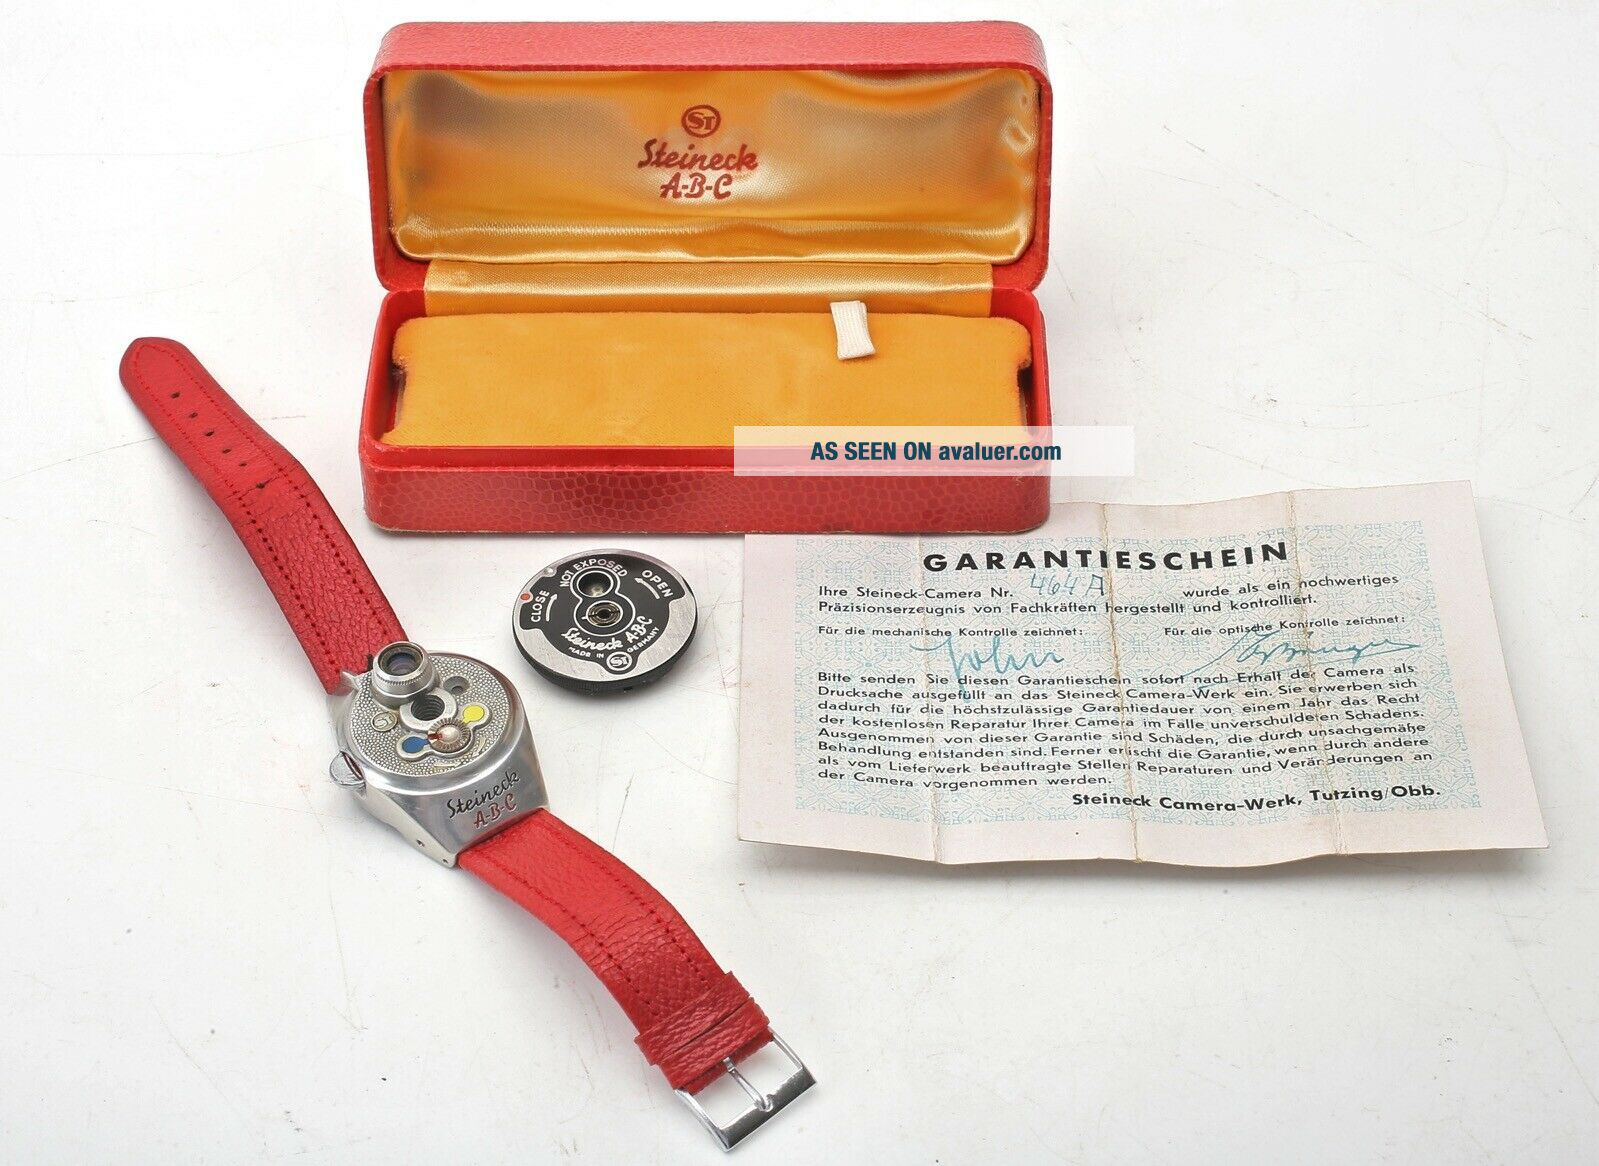 Steineck A - B - C Spy watch camera,  Red Strap,  Film,  Certificate,  Display Box,  RARE SET